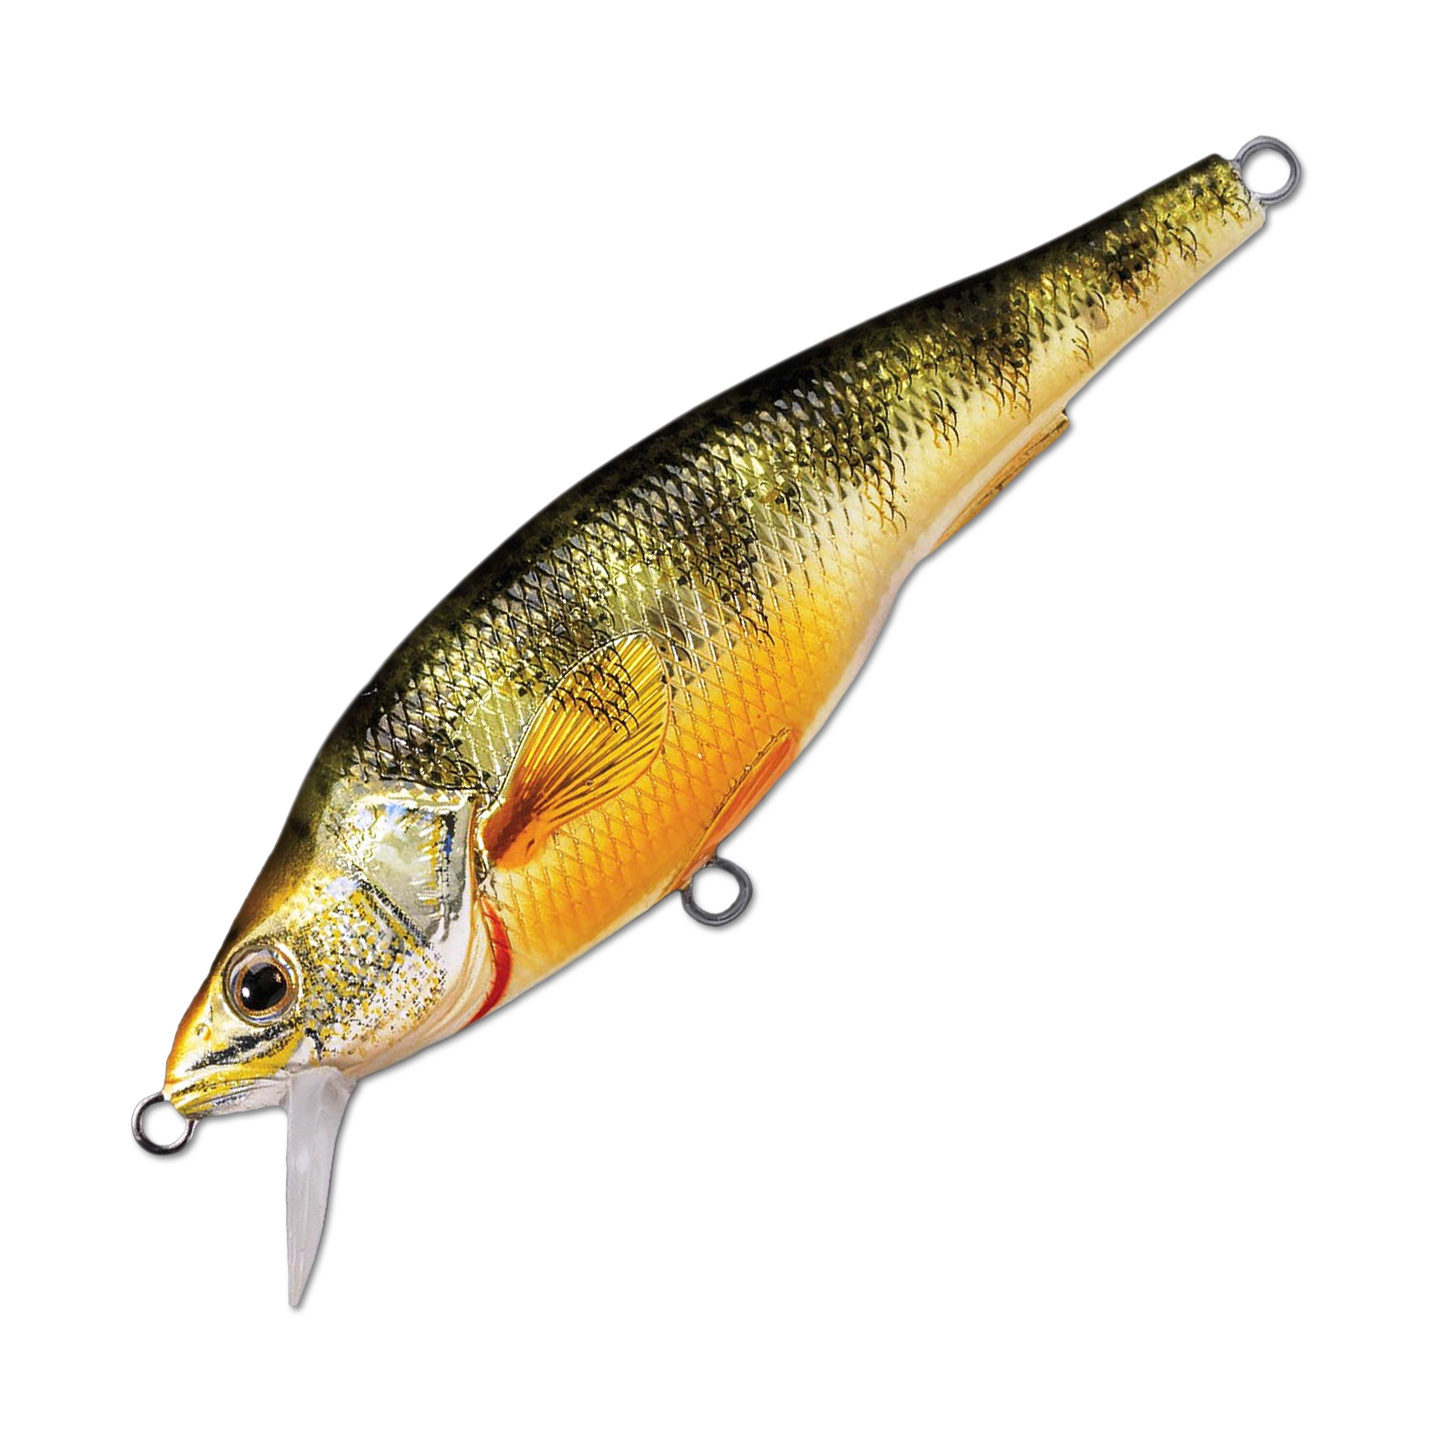 Воблер LiveTarget Yellow Perch Jerkbait 73SP вес 11  гр. цвет  102 Metallic/Gloss